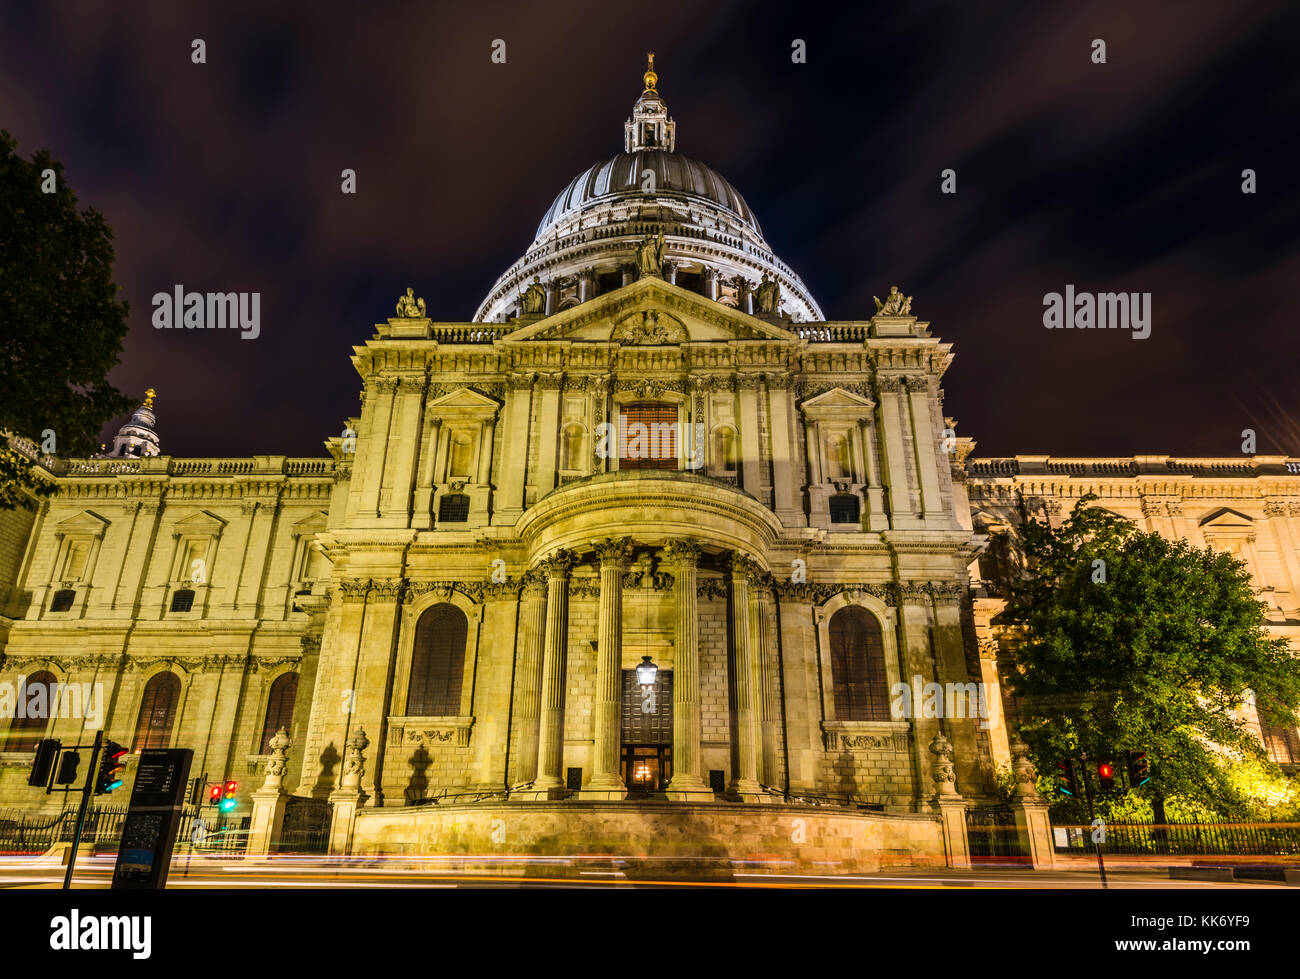 Side elevation after dusk at St Paul's Cathedral, London, UK - Stock Image